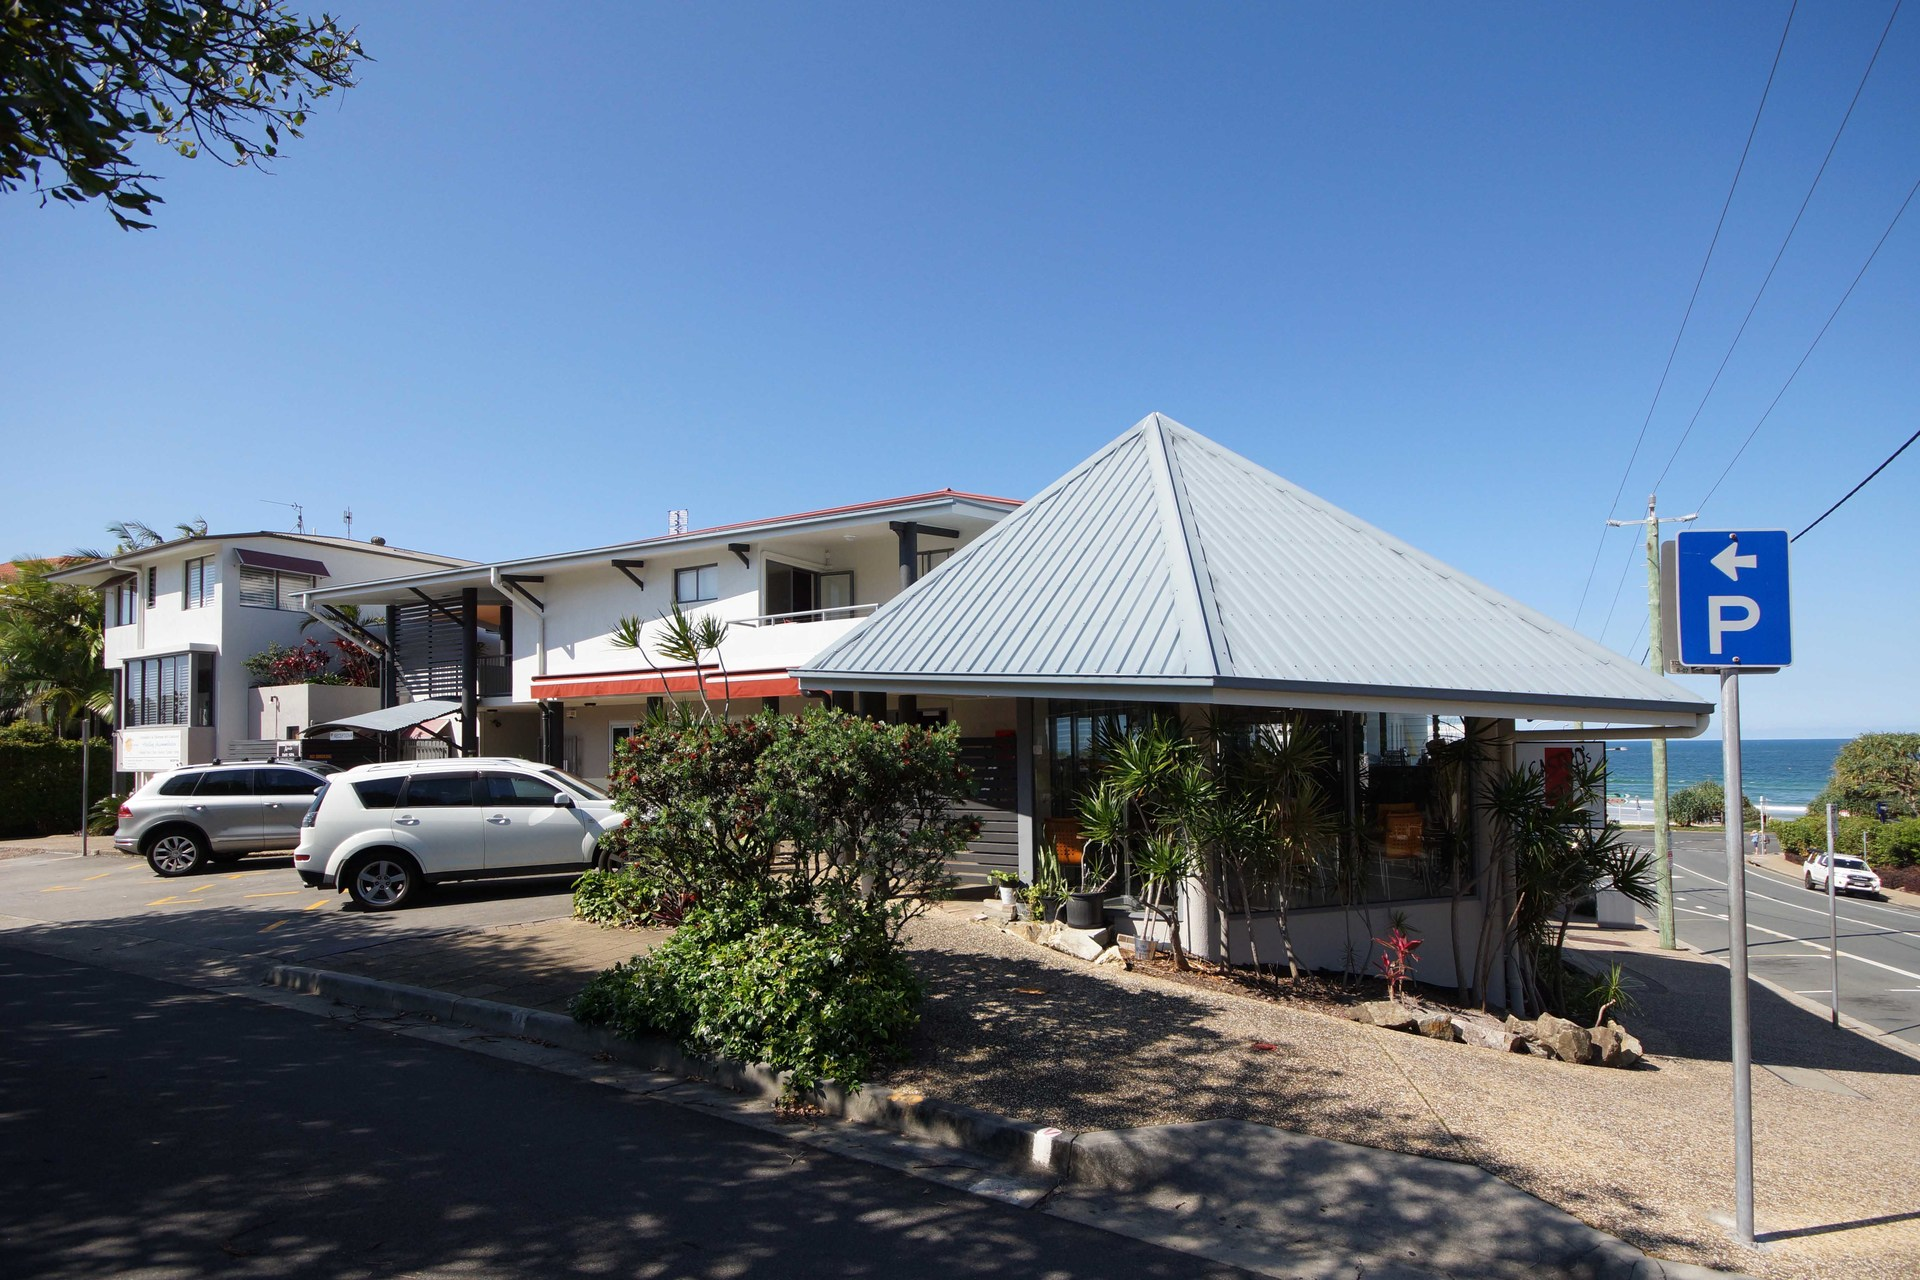 a - Coolum Beach Resort